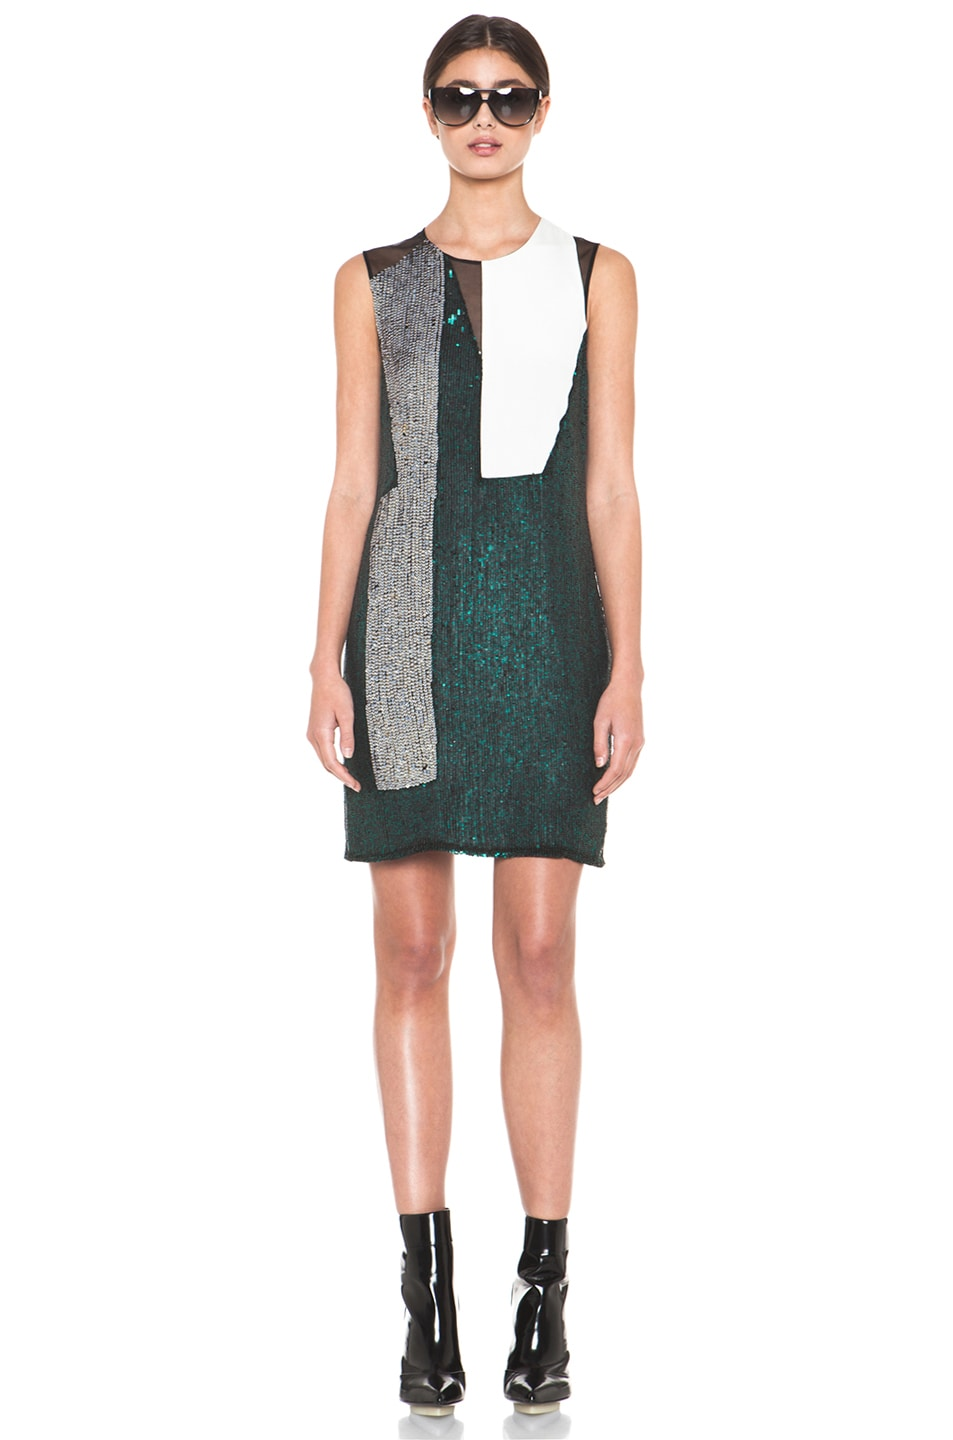 Image 1 of 3.1 phillip lim Collage Dress in Emerald